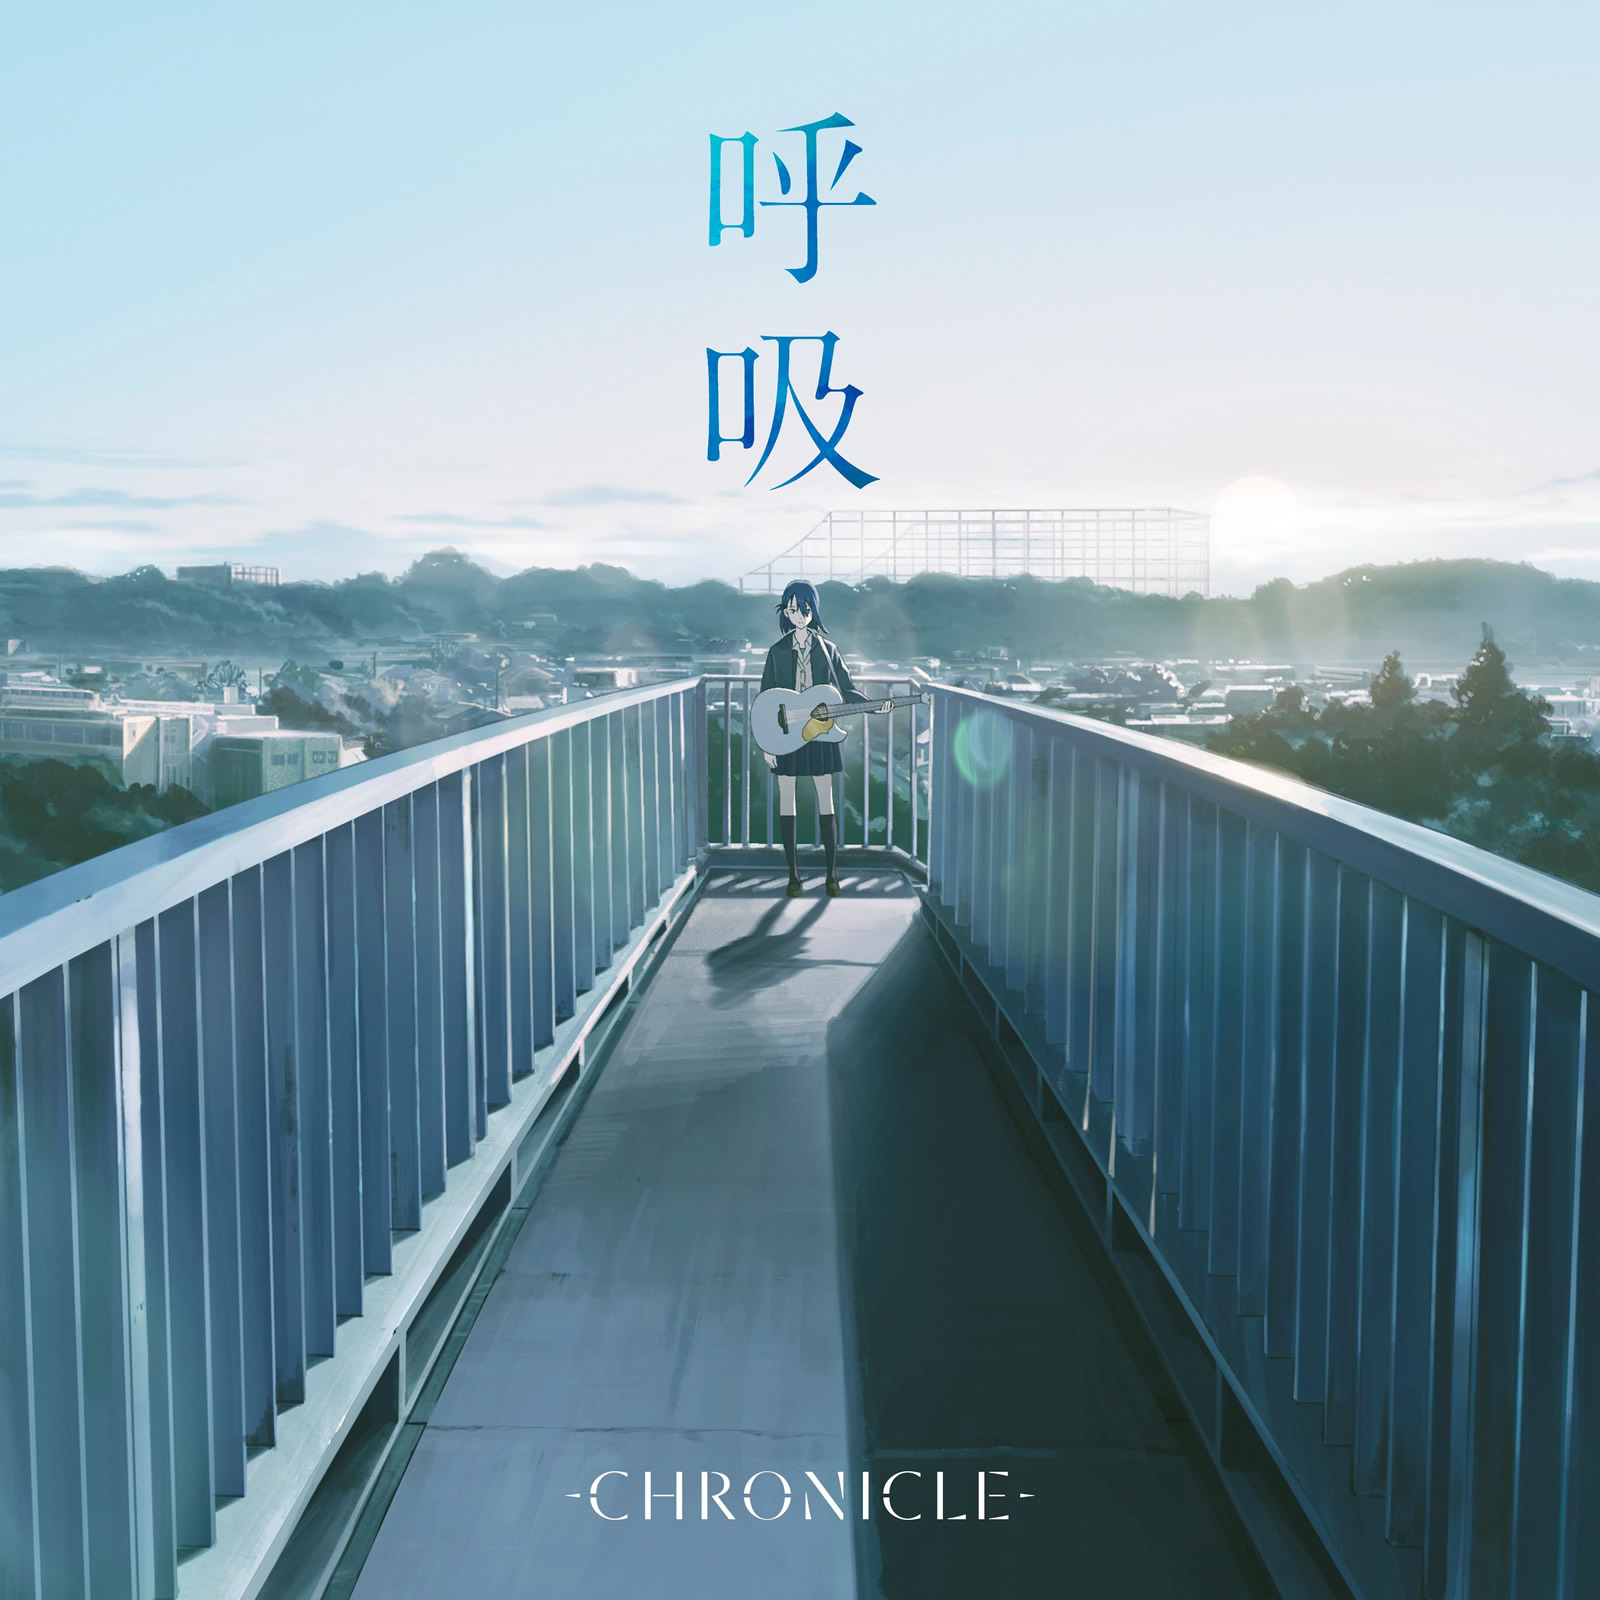 CHRONICLE digital single 「呼吸」